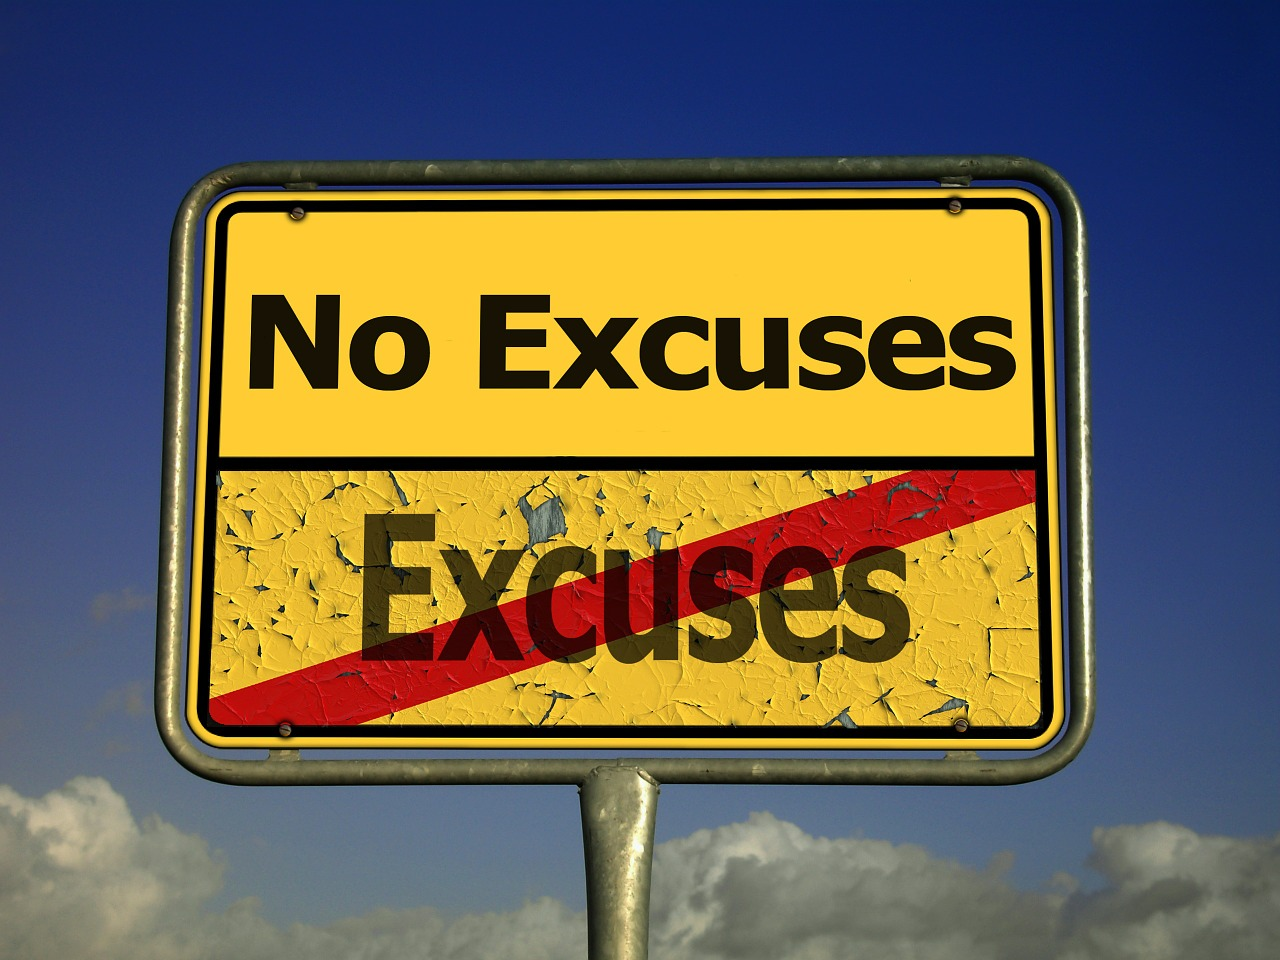 Excuses 101: There is no good excuse